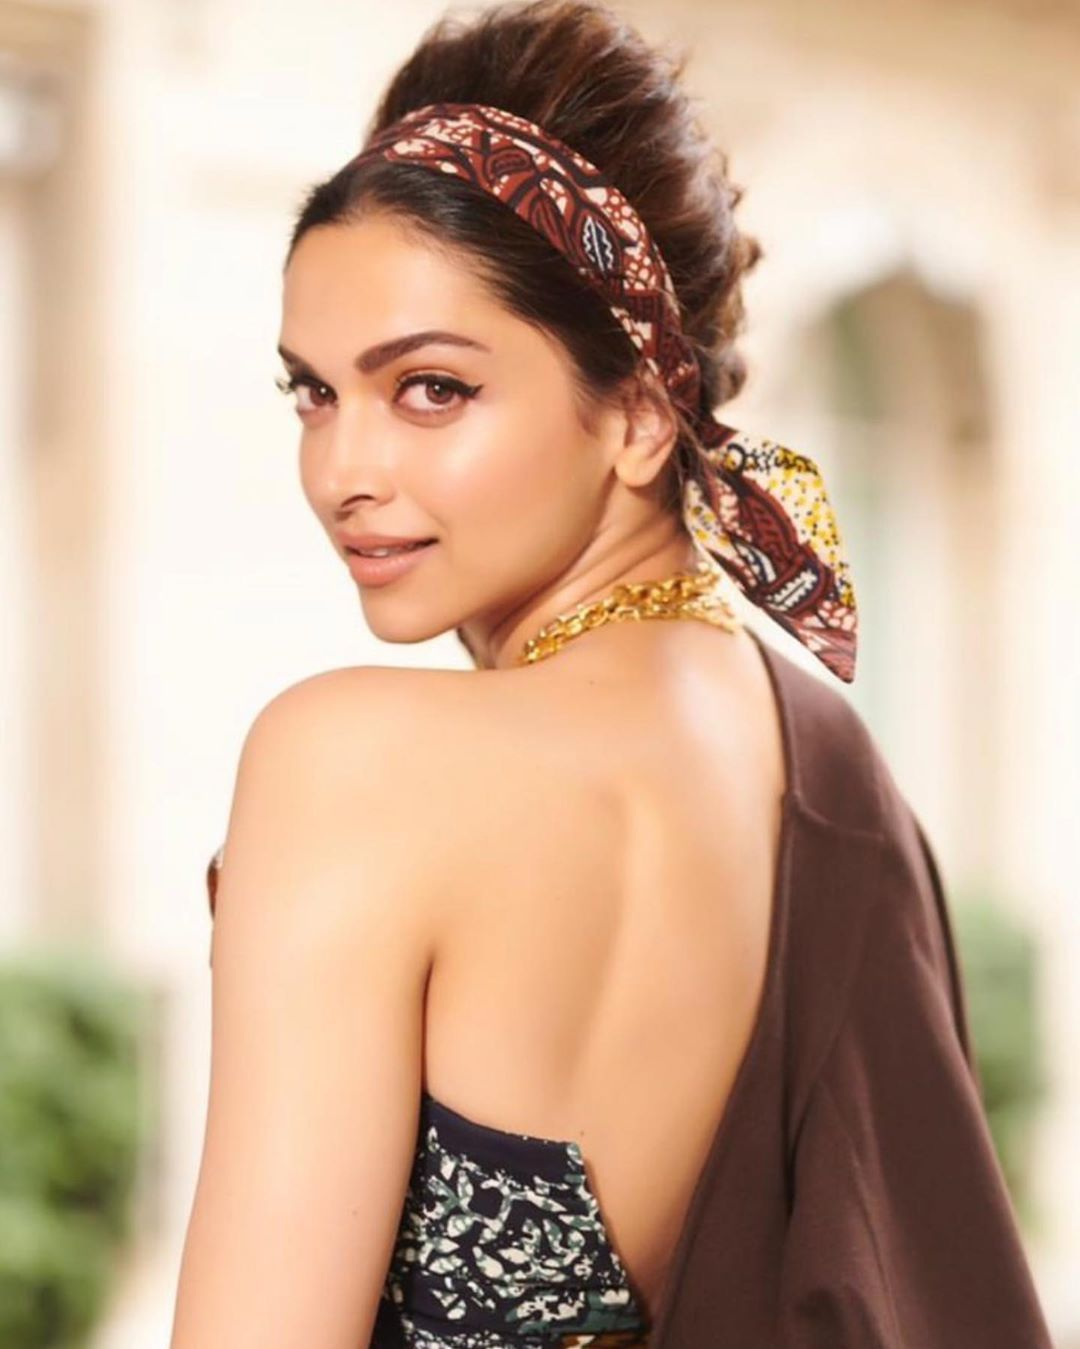 Deepika Padukone Schools Us How A Vintage Look Is Really Done During As She Attends Christian Dior Show In Paris Hungryboo Deepika Padukone Style Bollywood Actress Hot Photos Deepika Padukone